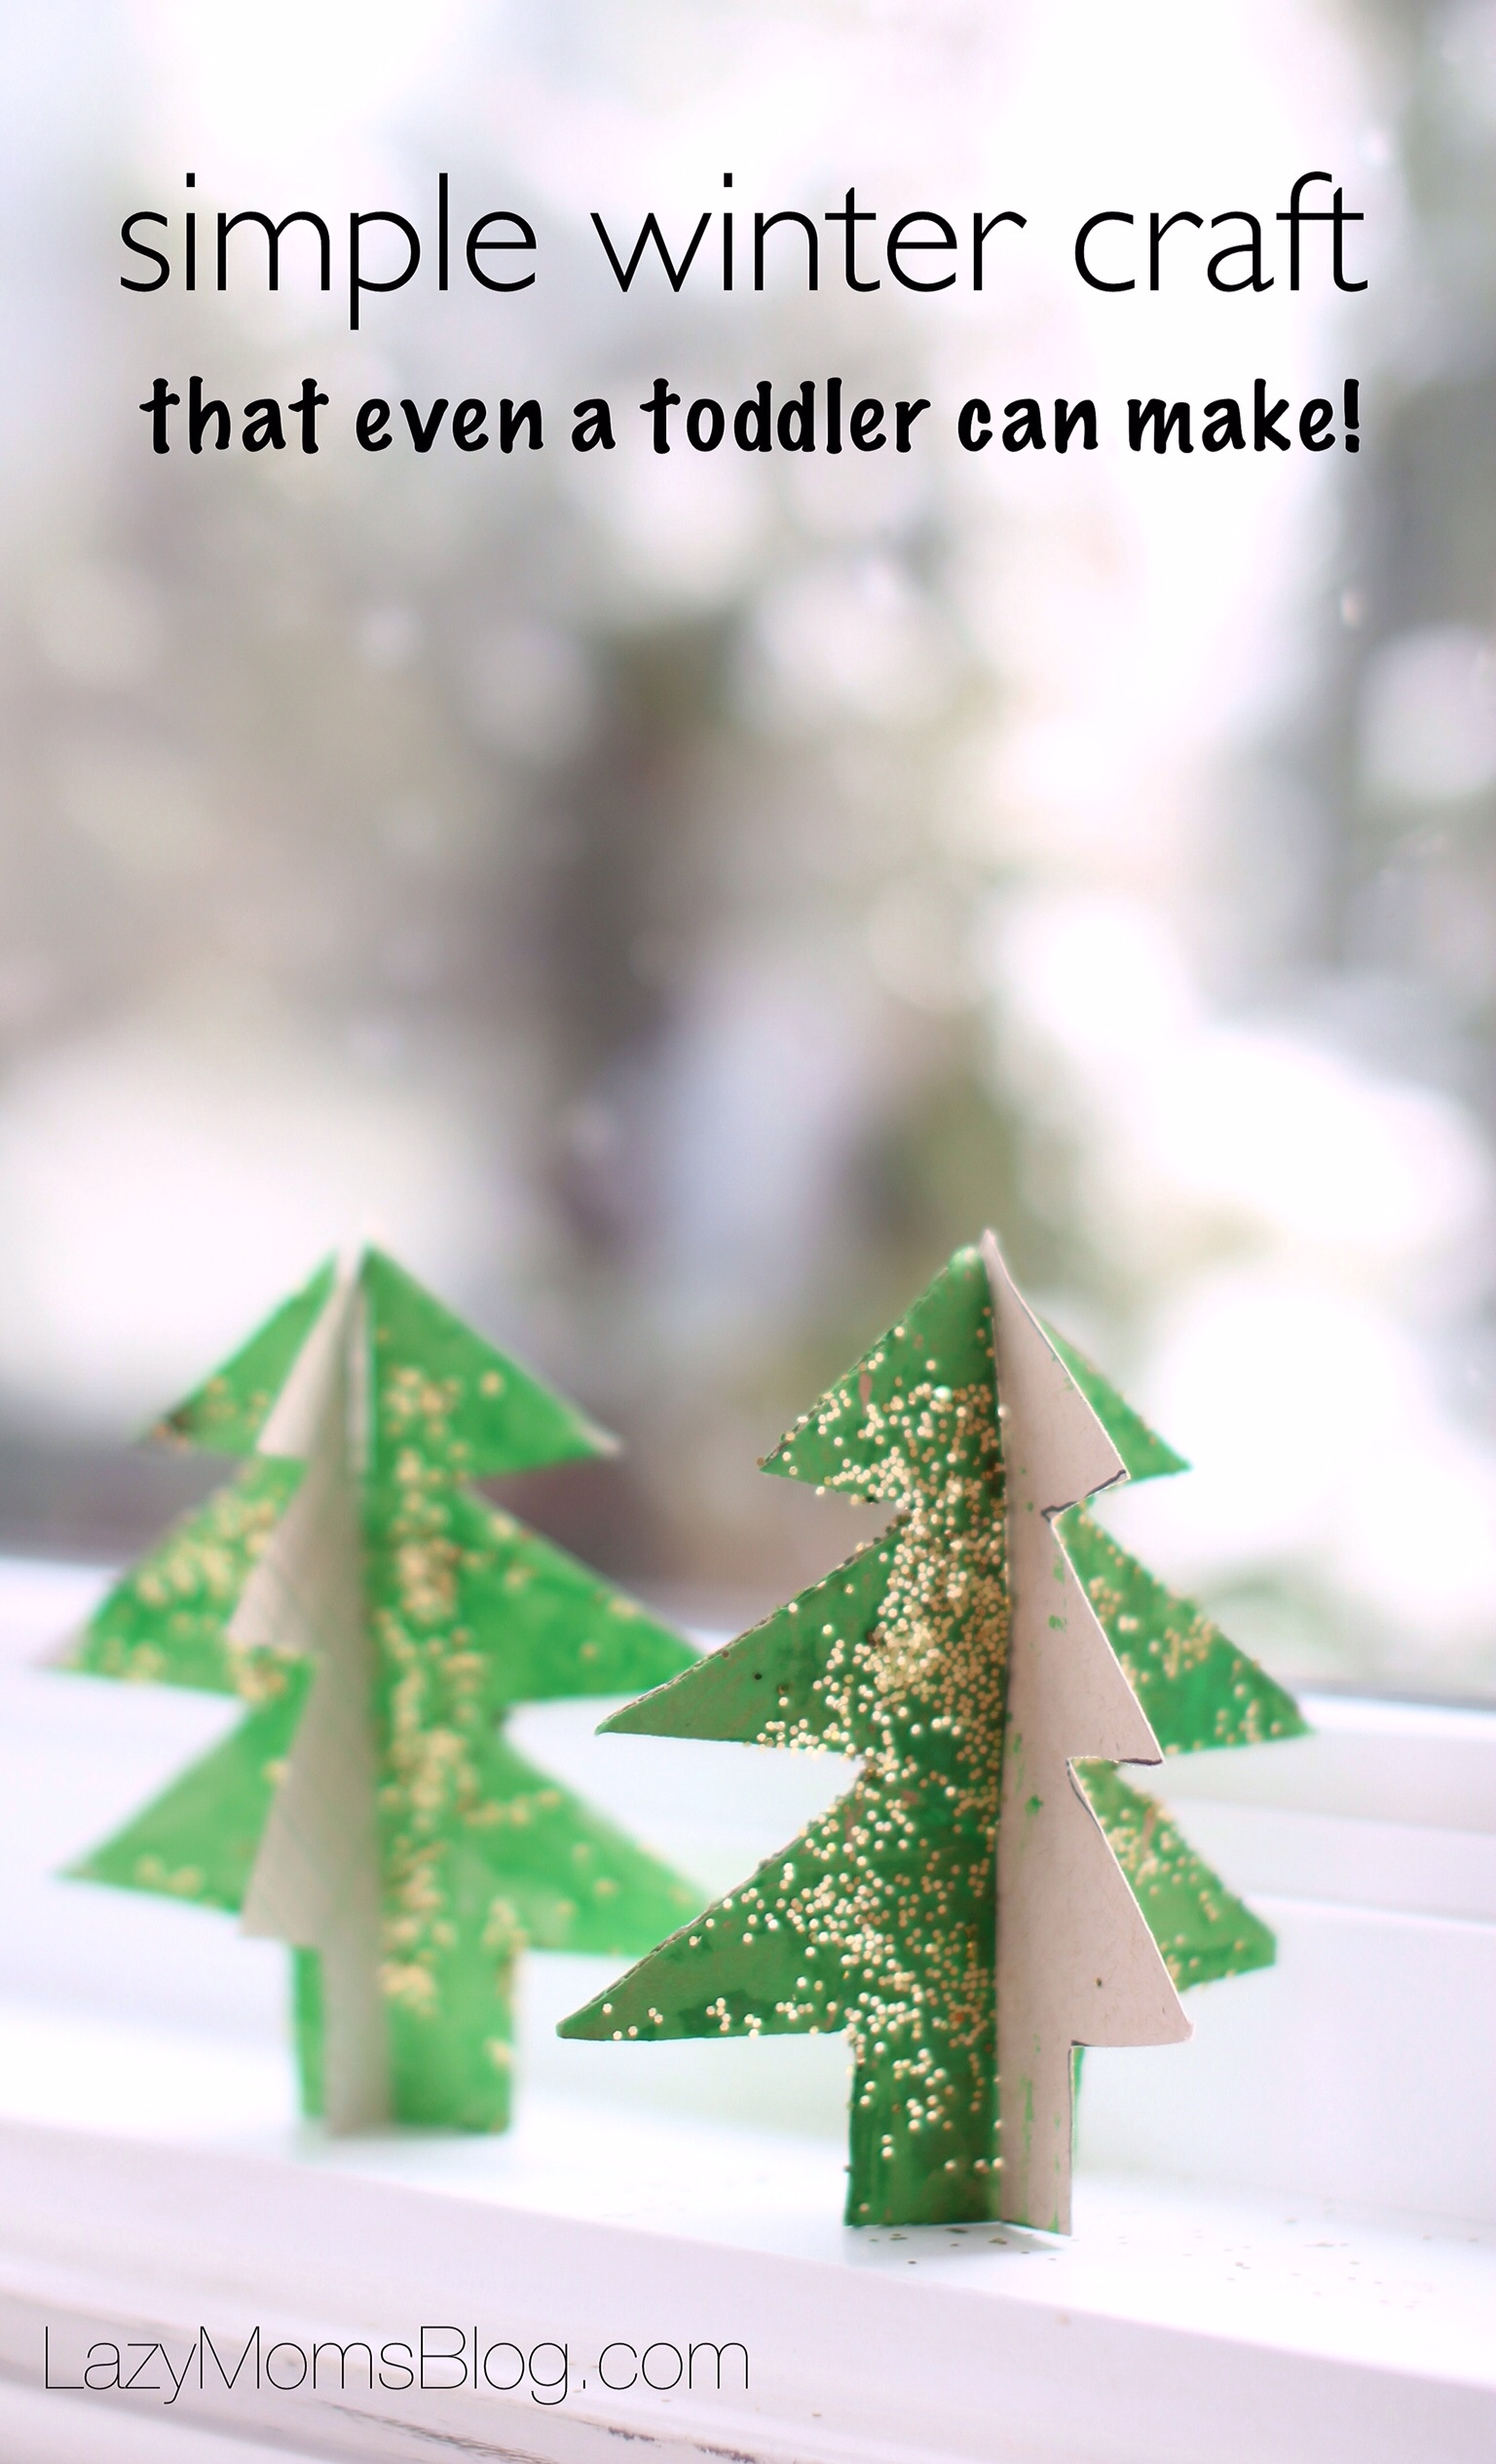 Easy Winter Kids Crafts That Anyone Can Make: Recycled Cardboard Christmas Tree: Easy Winter Craft